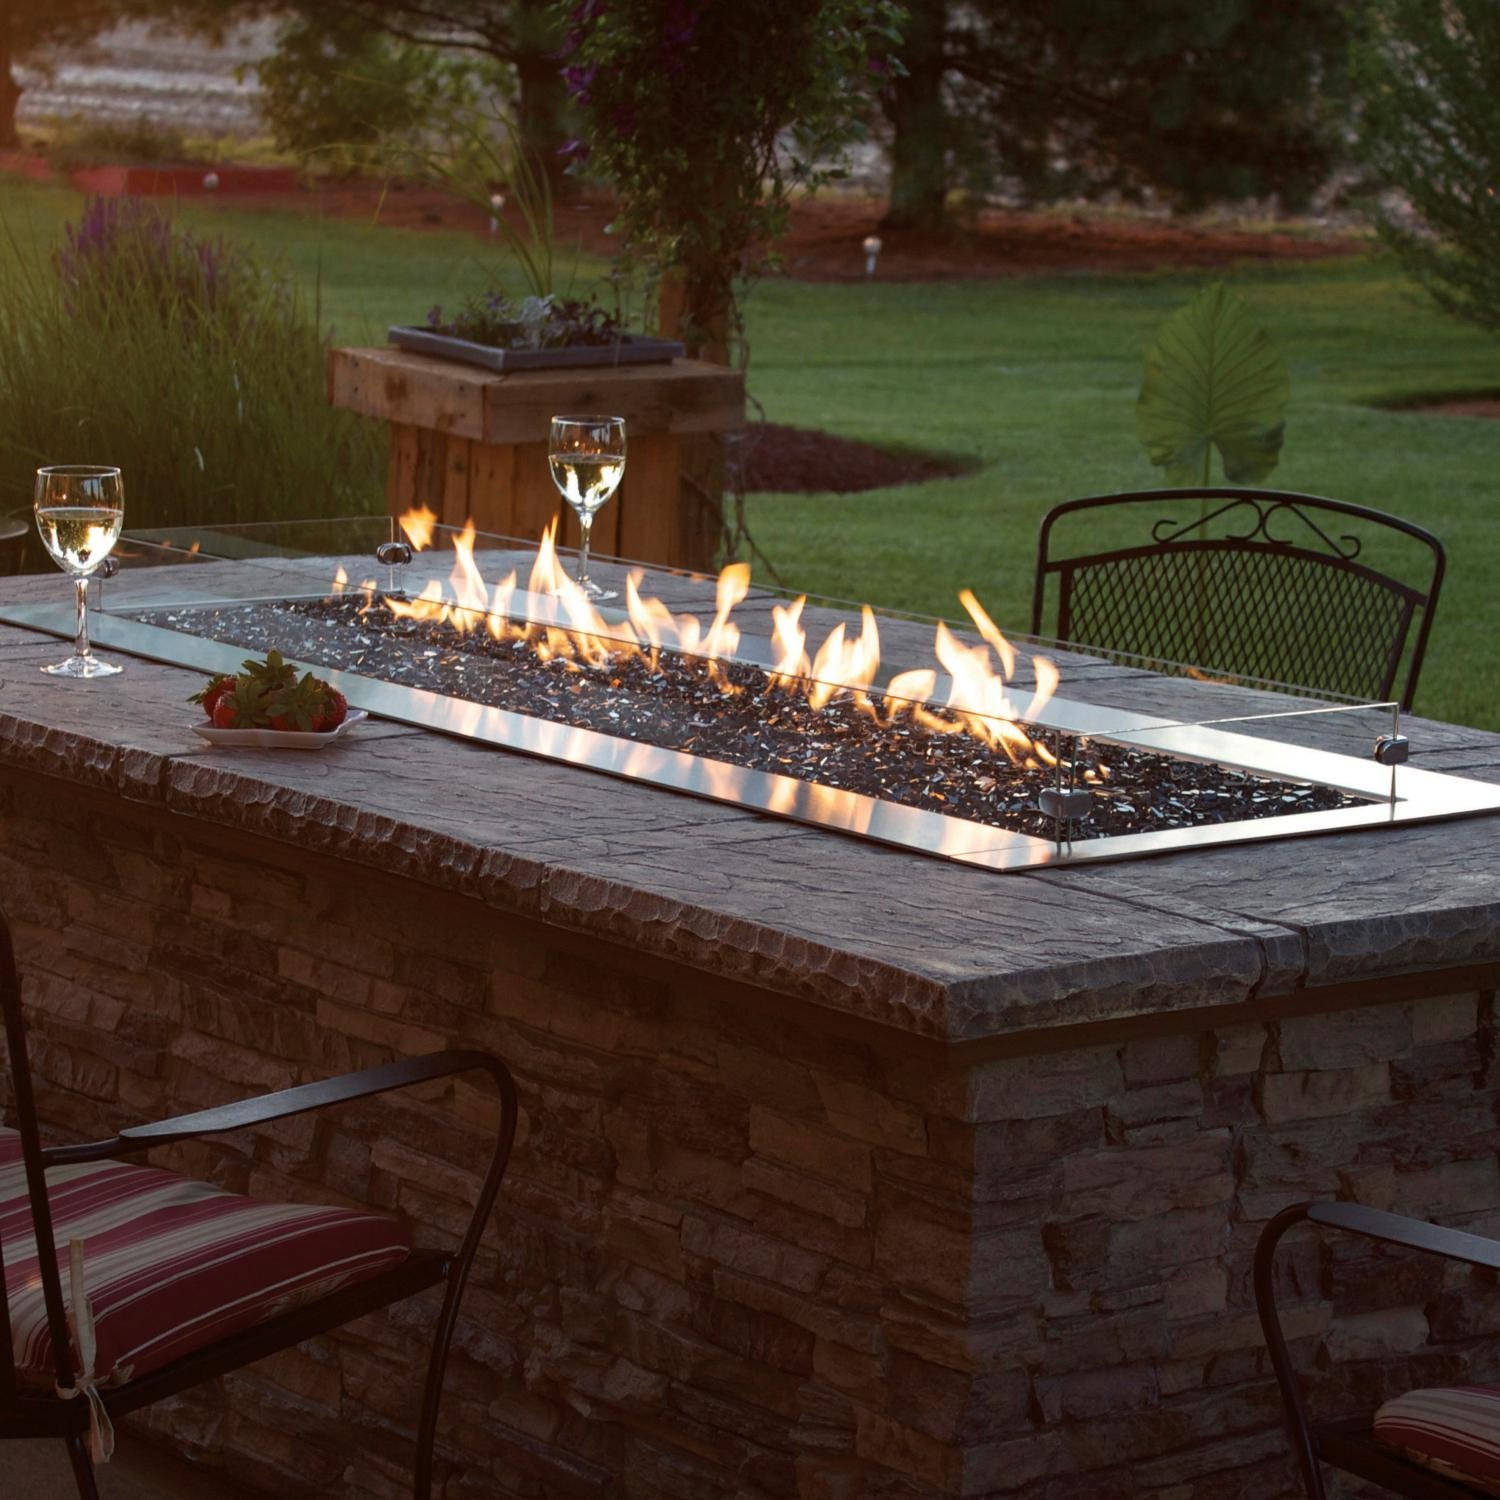 Amazon.com : White Mountain Hearth by Empire Carol Rose 48-inch Natural Gas  Outdoor Linear Fire Pit Kit W/Manual Electronic Ignition - Ol48tp10n :  Garden & ... - Amazon.com : White Mountain Hearth By Empire Carol Rose 48-inch